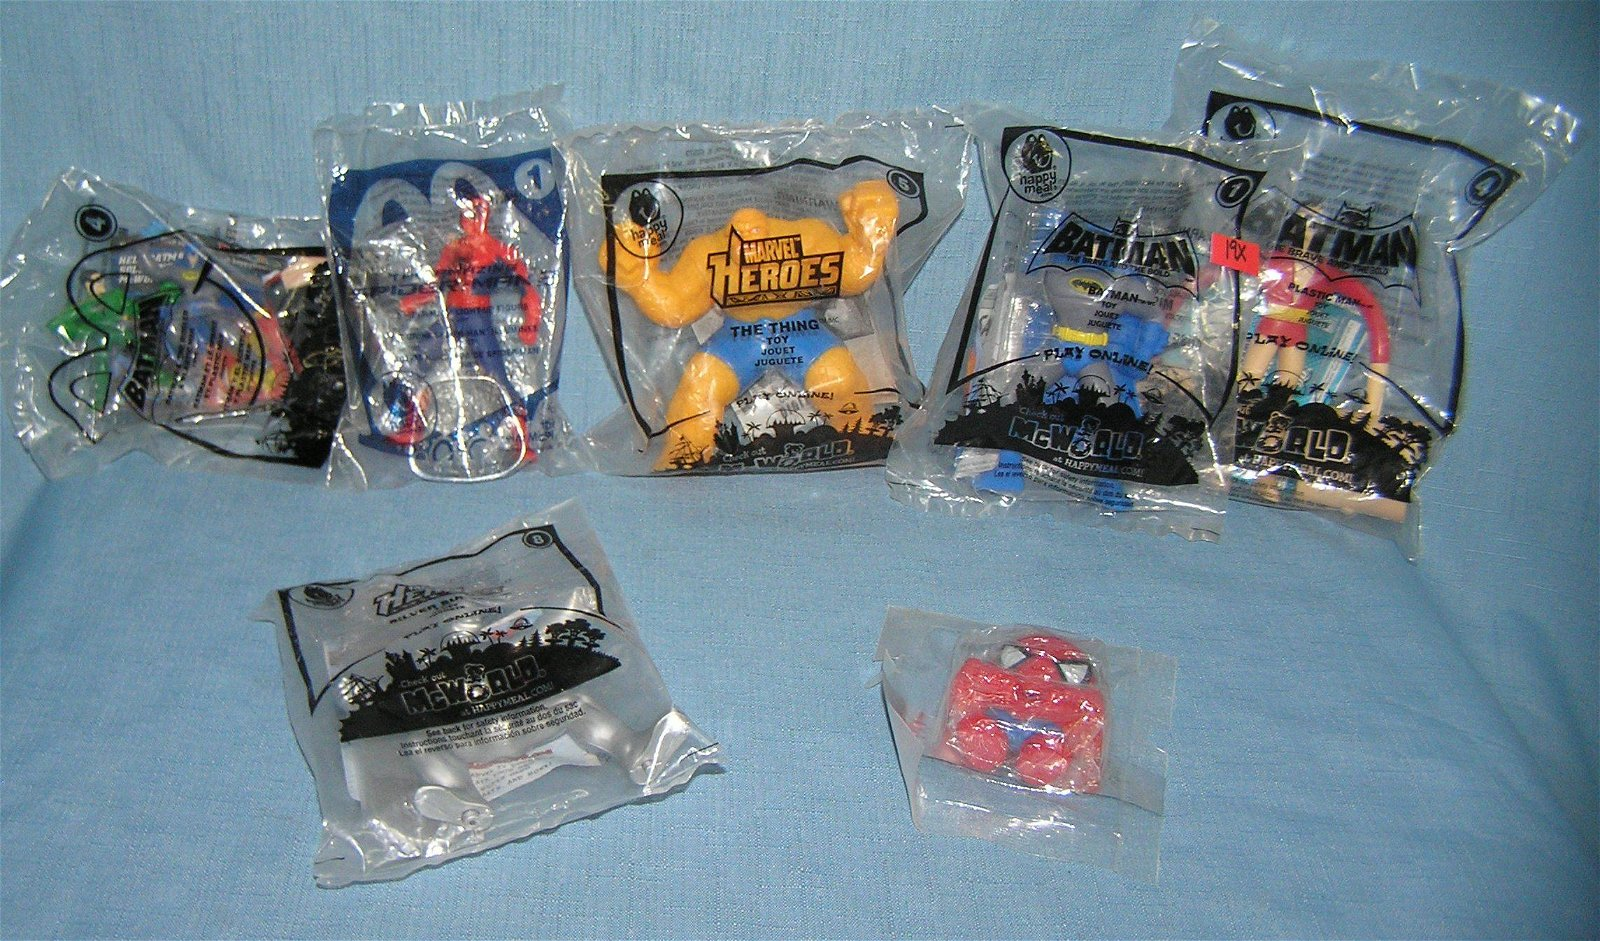 Group of Super hero action figures